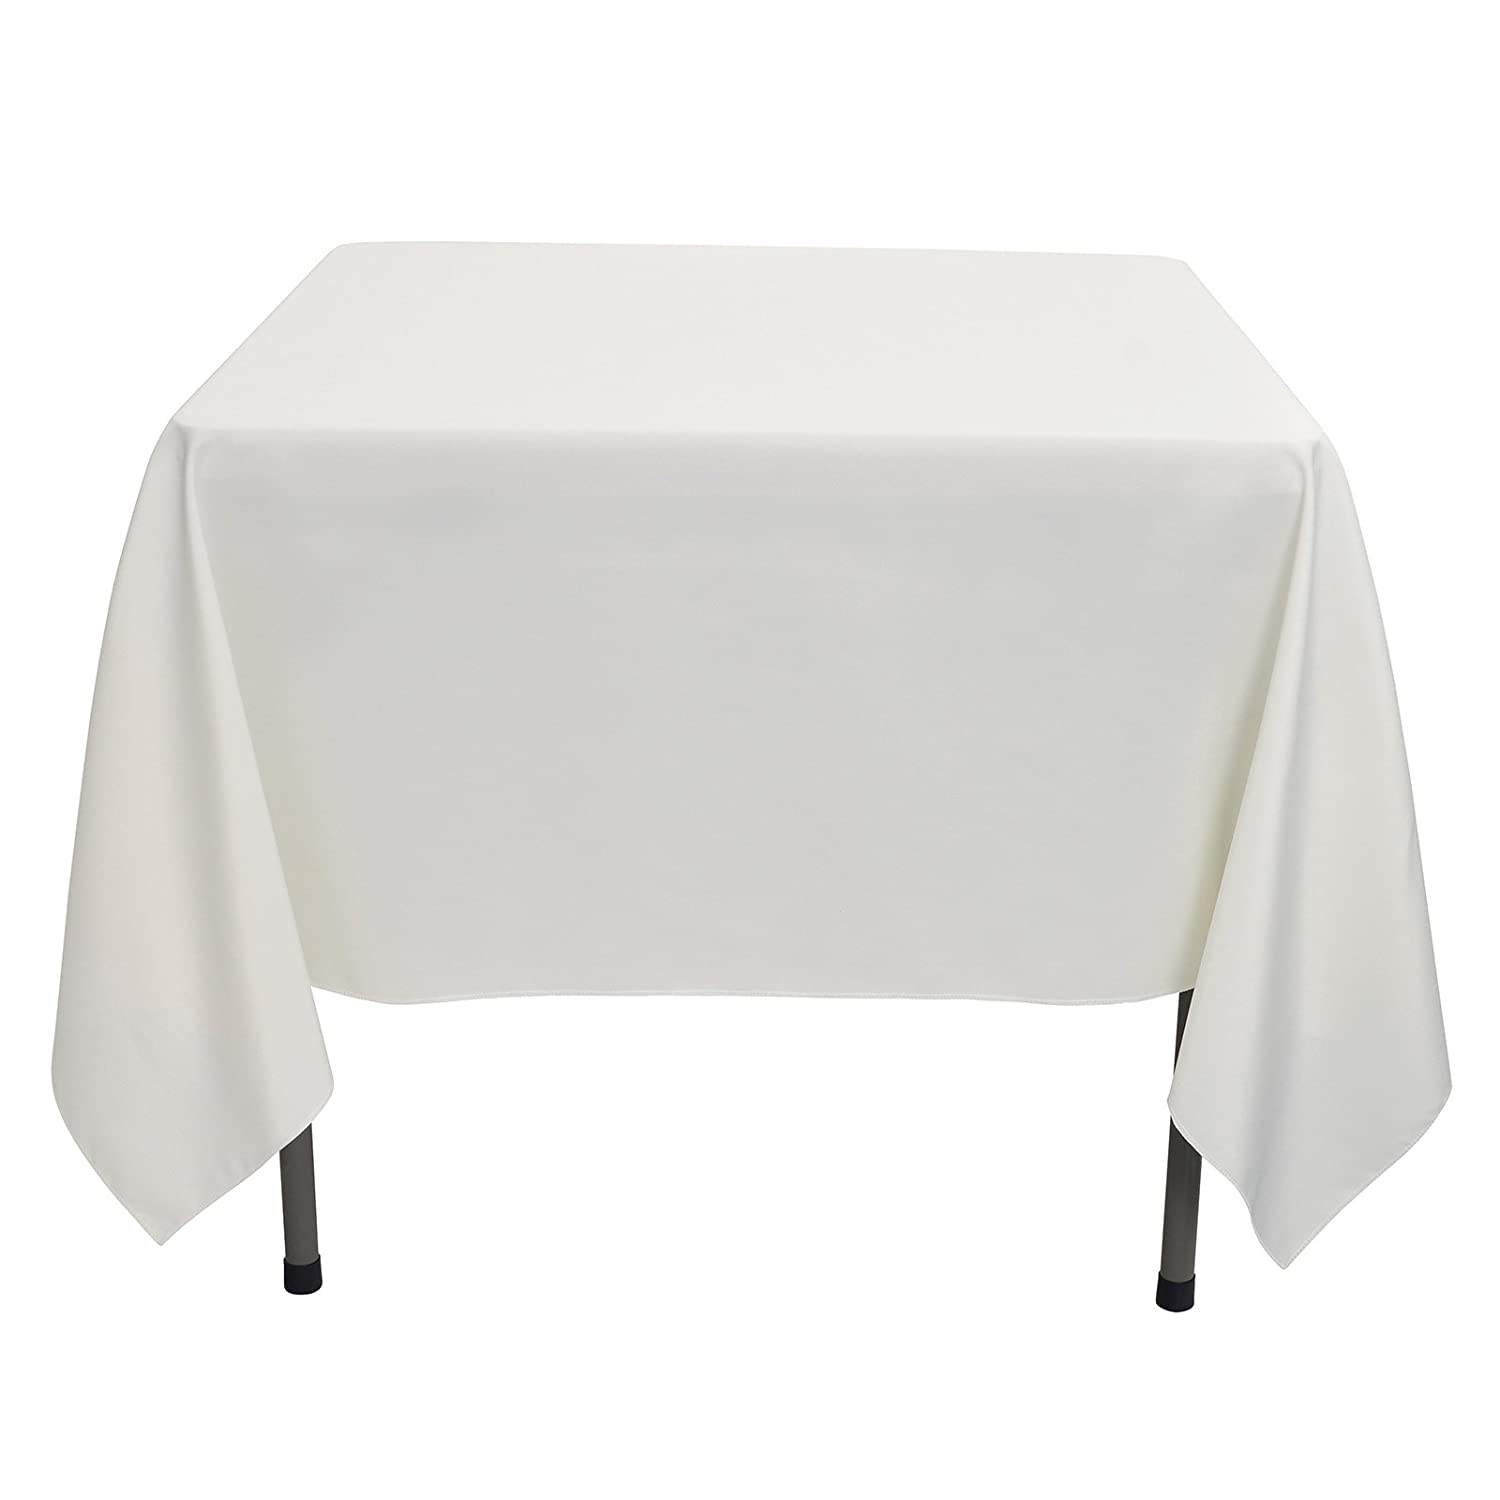 Amazon Remedios Tablecloth 70 inch Square Polyester Table Cover